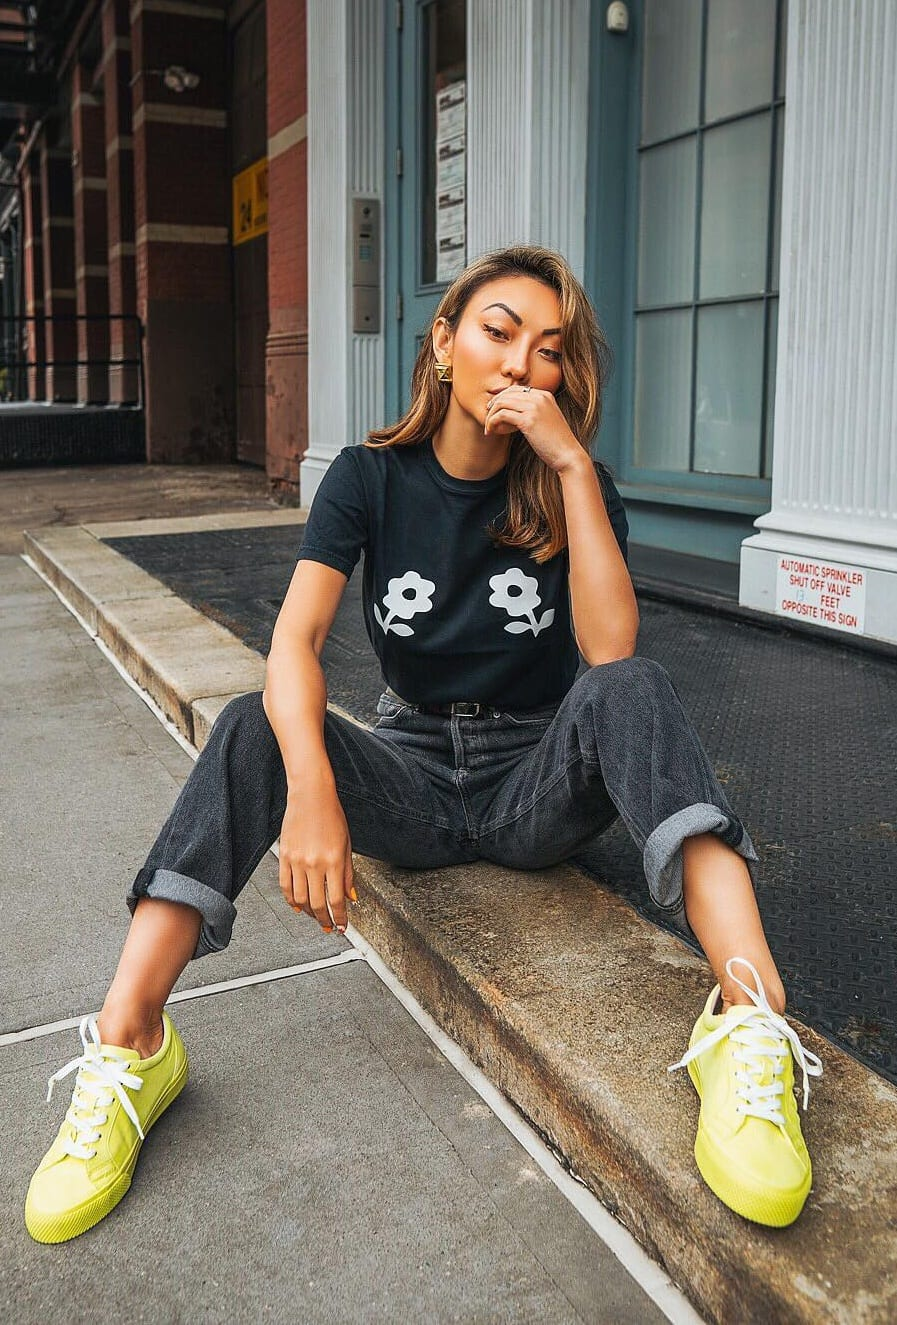 Green-Eye-Poping-Sneakers-and-Casual-Jeans-T-shirt-Outfit